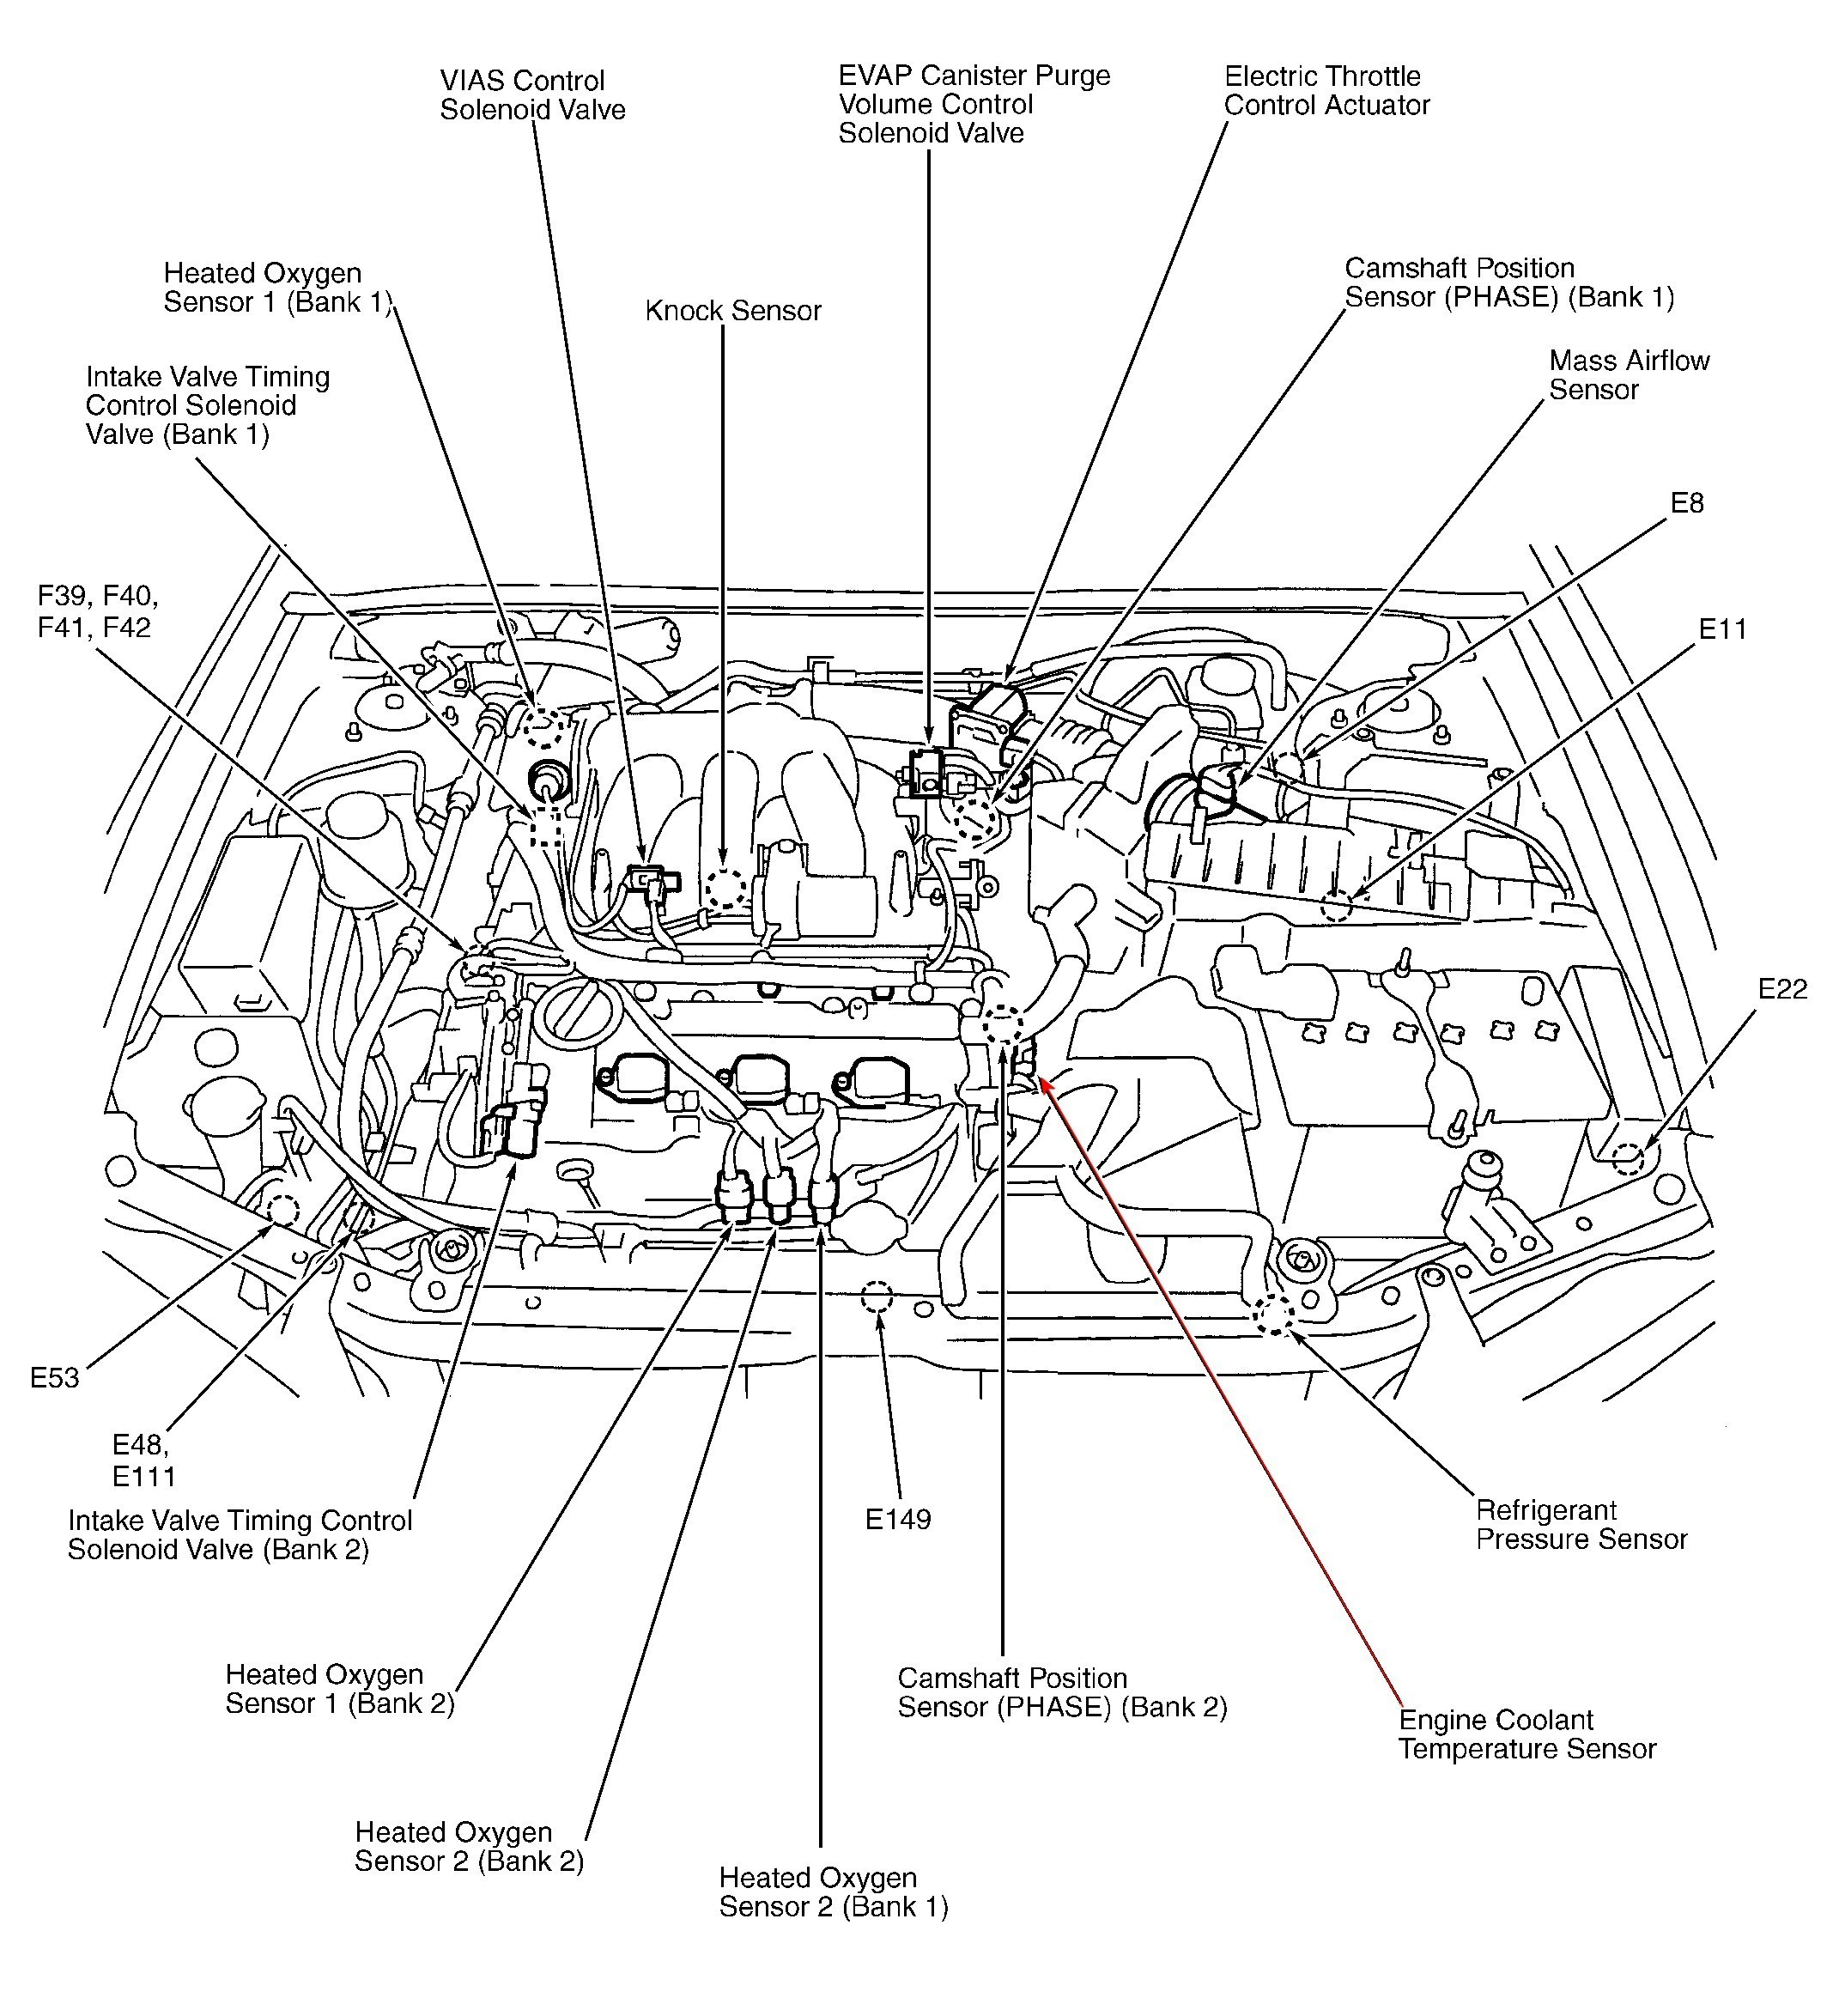 Engine Coolant Diagram 454 Coolant Flow Diagram Car Wiring Diagrams Explained • Of Engine Coolant Diagram